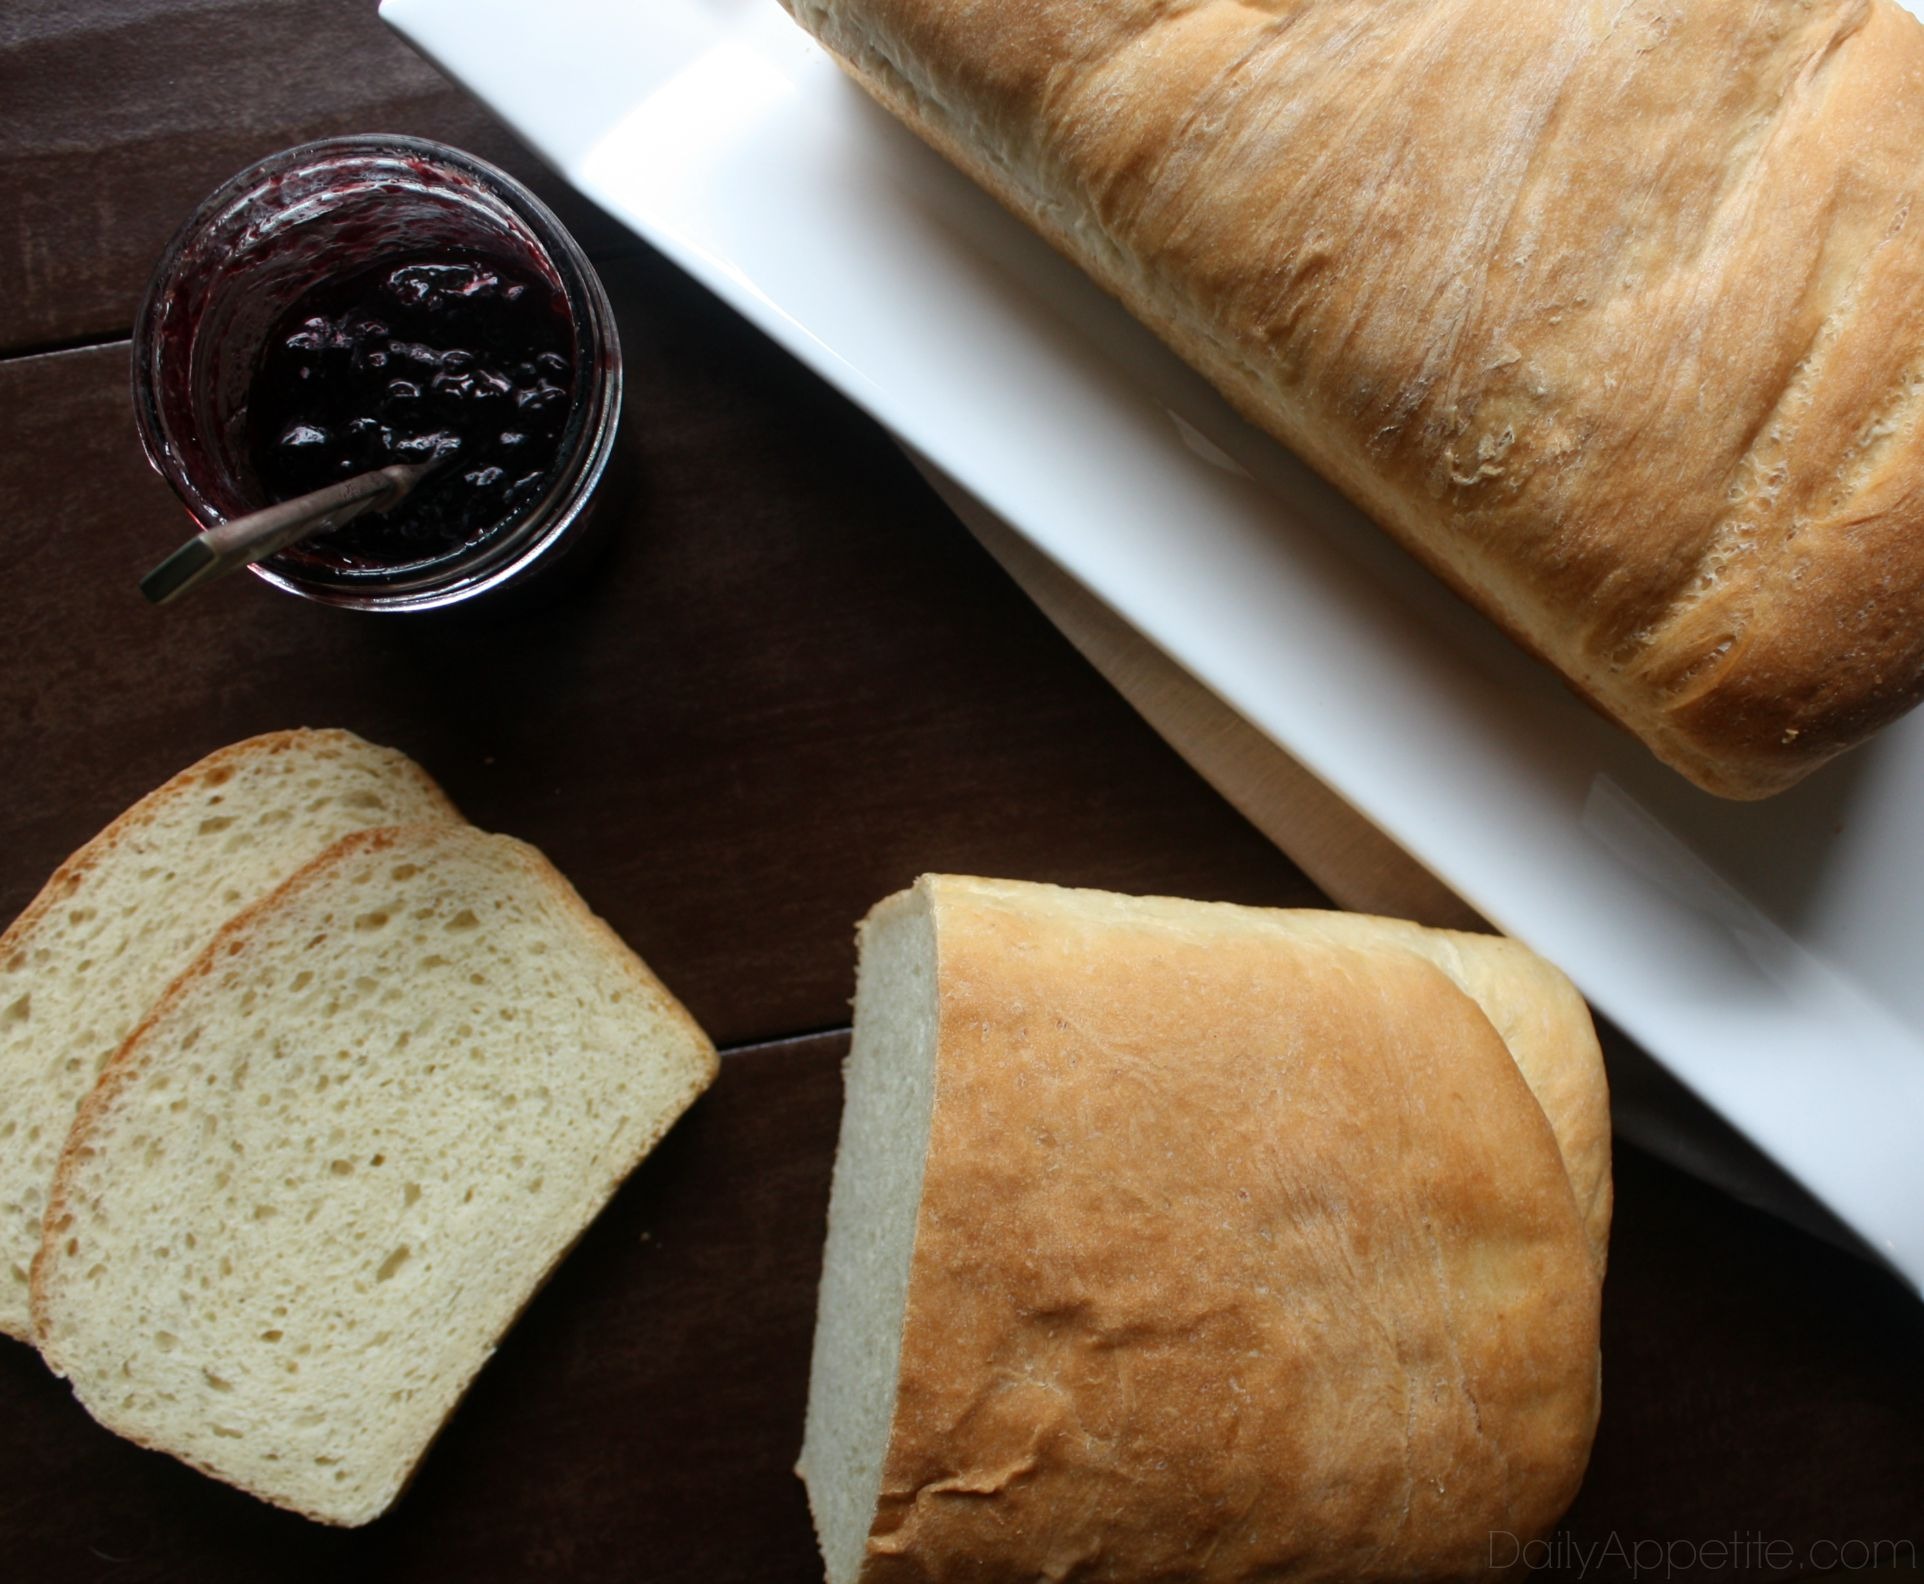 Homemade Bread with Jam